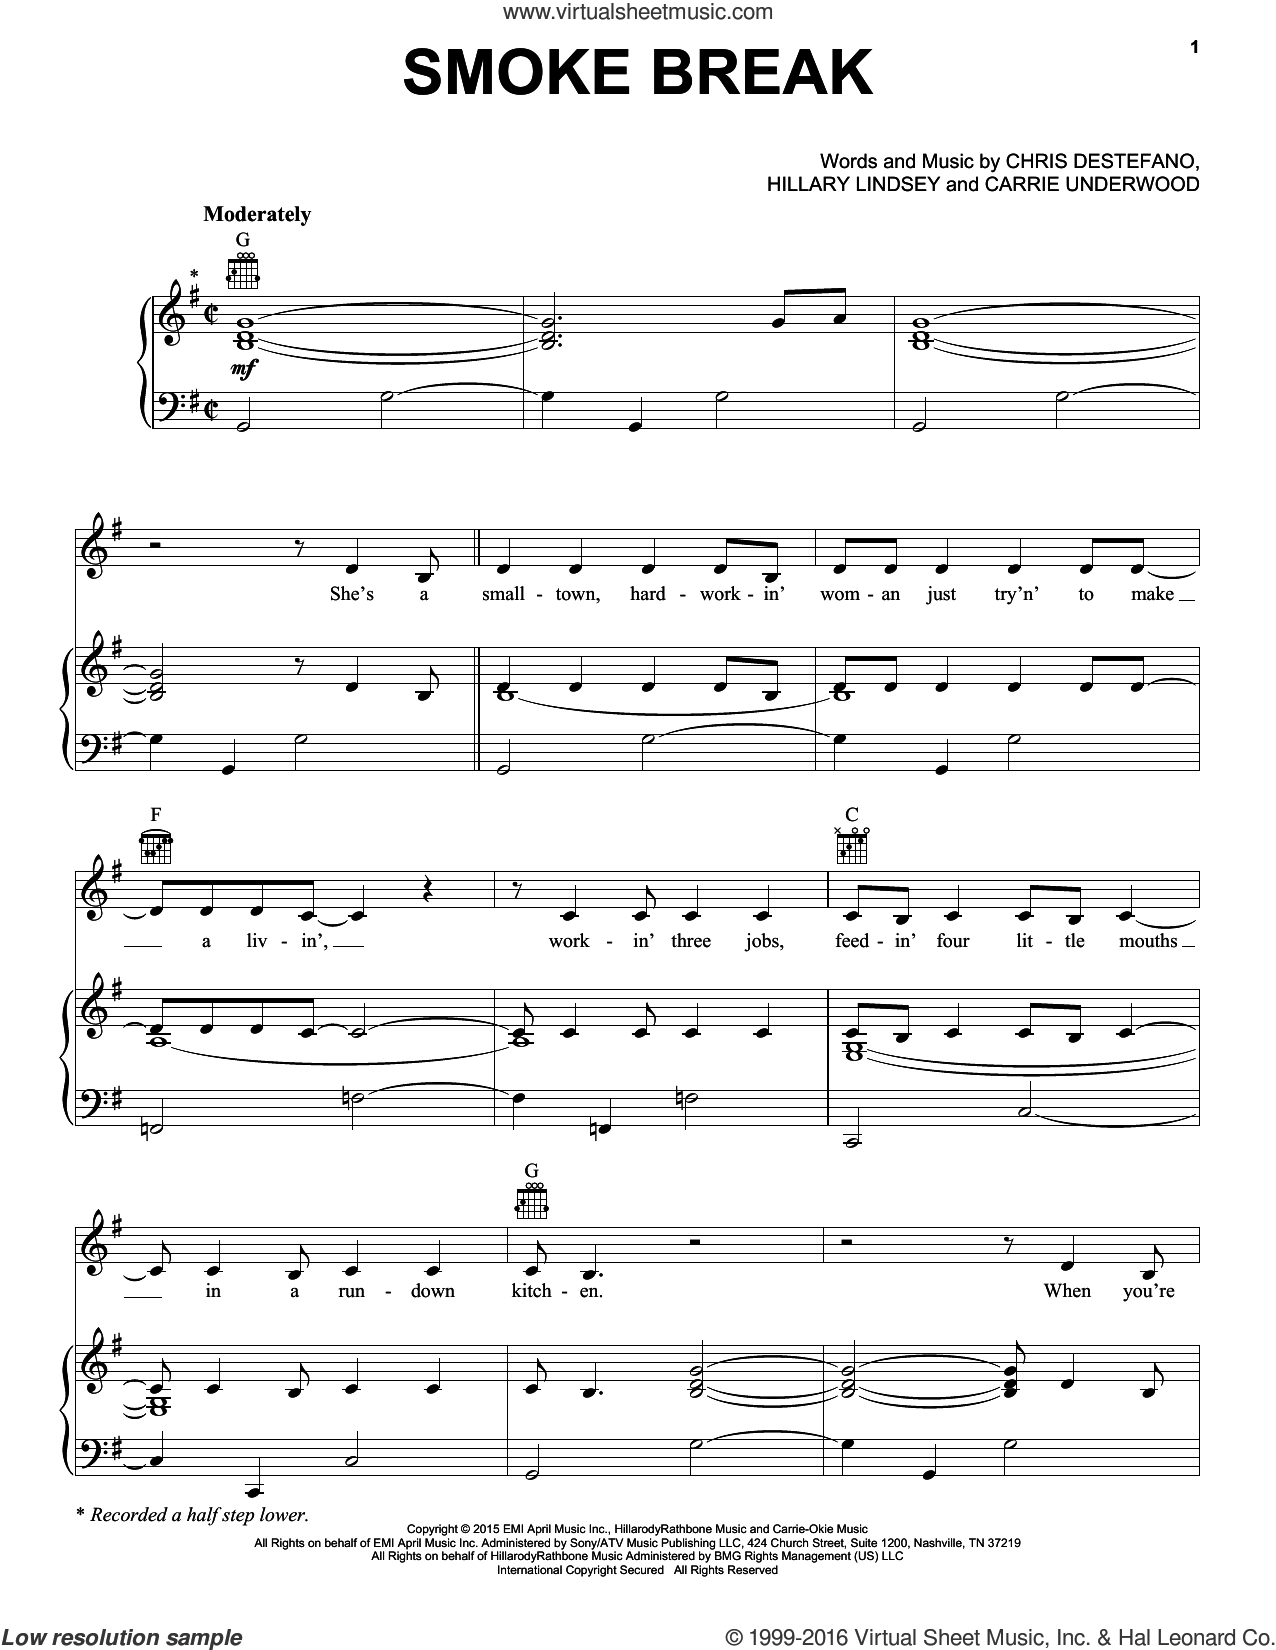 Smoke Break sheet music for voice, piano or guitar by Carrie Underwood, Chris Destefano and Hillary Lindsey, intermediate skill level